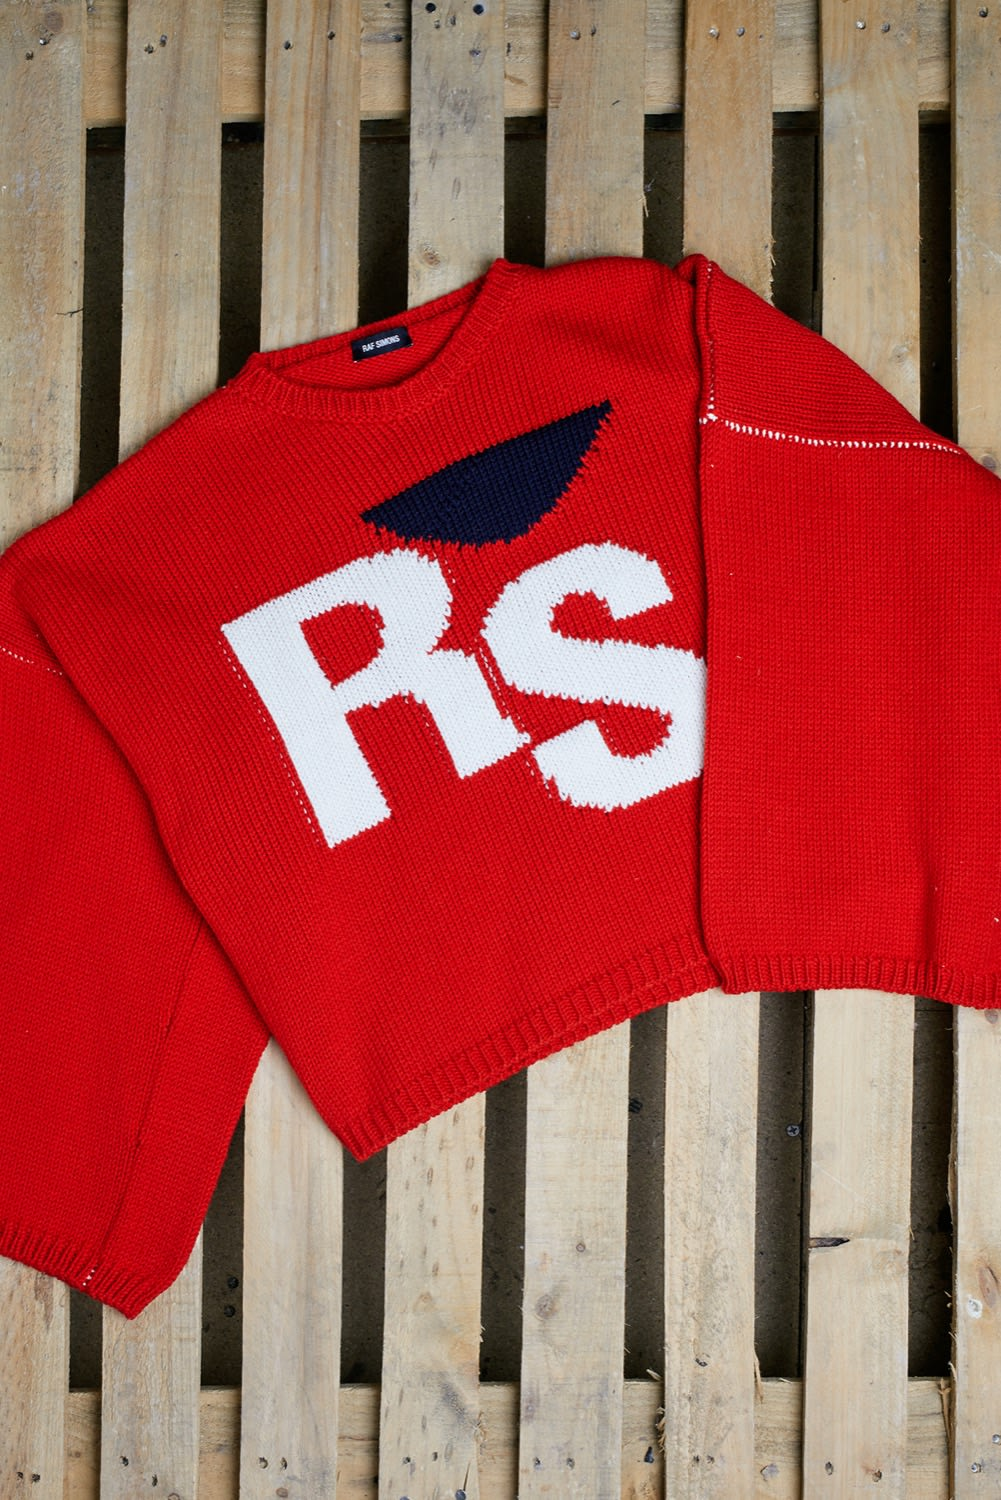 END. AW19 Required Item: Graphic Knitwear - off-model shot of Raf Simons